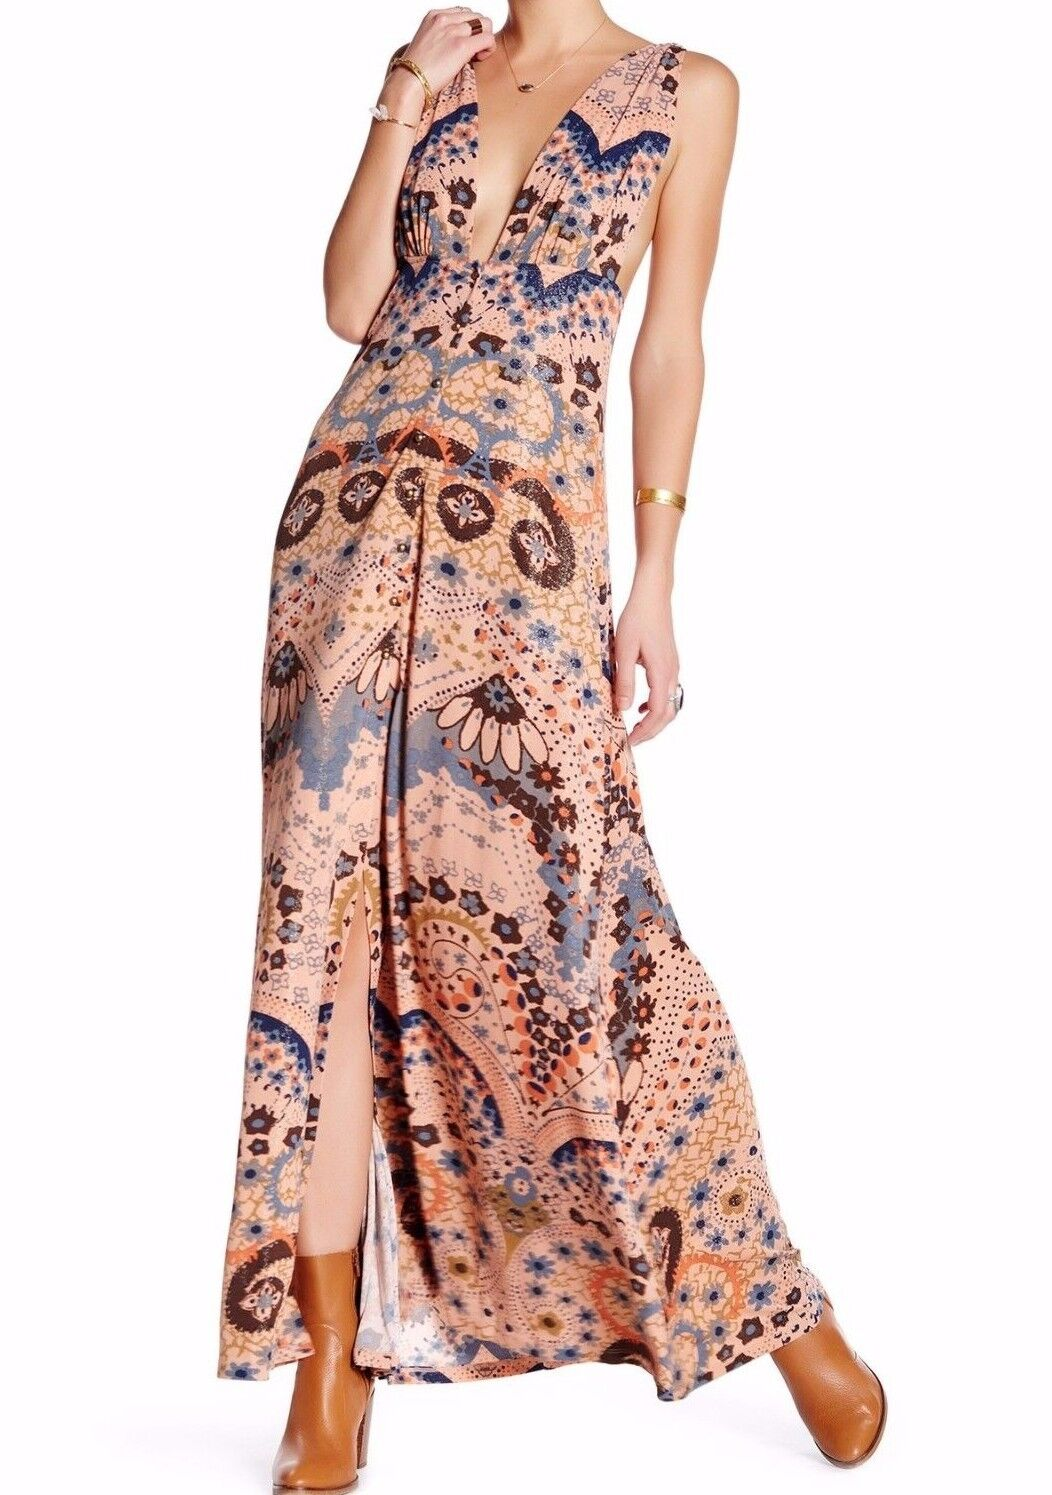 NWT FREE PEOPLE SzM SLEEVELESS PRINT MAXI DRESS Rosa TAUPE COMBO